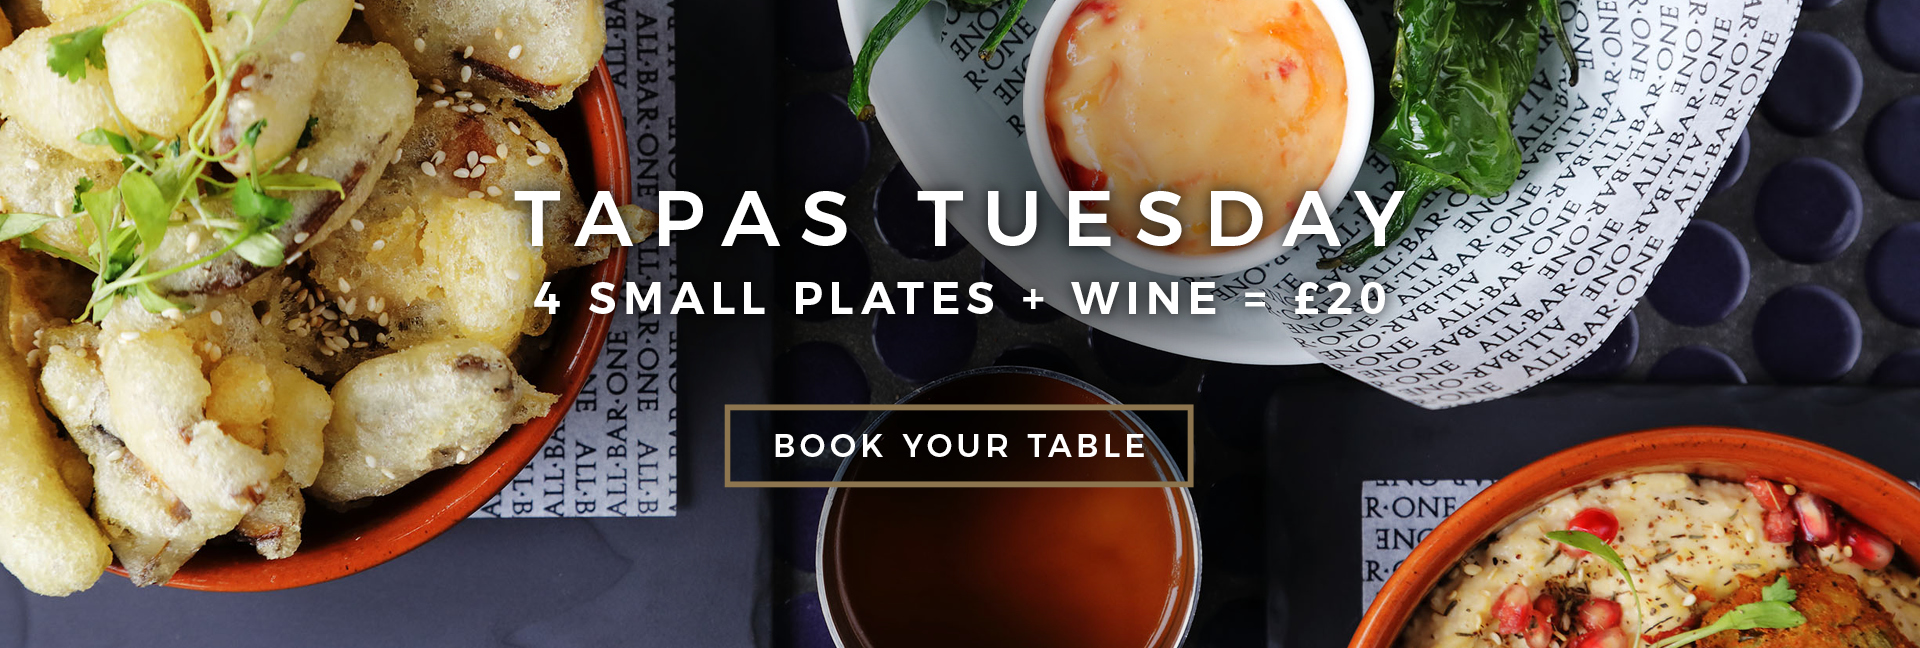 Tapas Tuesday at All Bar One Houndsditch - Book now